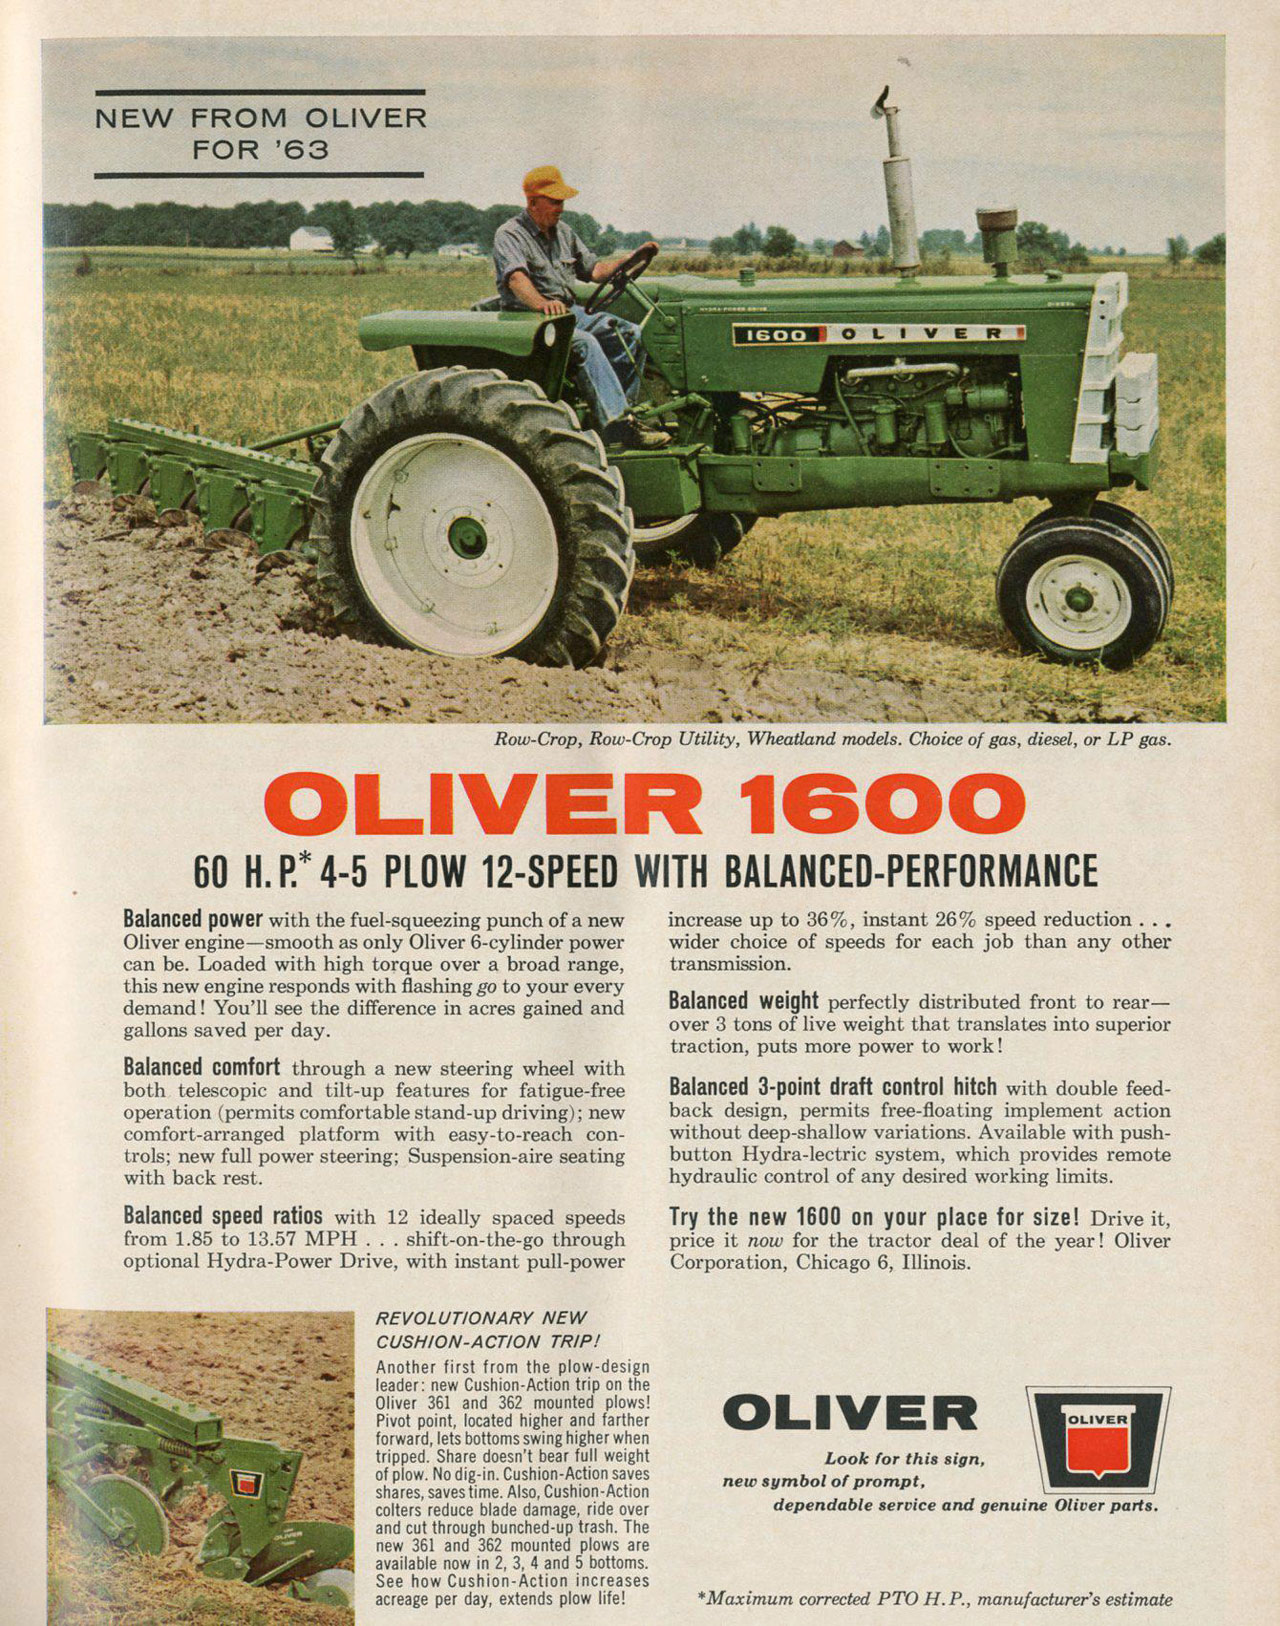 NEW FROM OLIVER FOR '63   Row-Crop, Row-Crop Utility, Wheatland models. Choice of gas, diesel, or LP gas.  OLIVER 1600  60 H. R* 4-5 PLOW 12-SPEED WITH BALANCED-PERFORMANCE  Balanced power with the fuel-squeezing punch of a new Oliver engine—smooth as only Oliver 6-cylinder power can be. Loaded with high torque over a broad range, this new engine responds with flashing go to your every demand! You'll see the difference in acres gained and gallons saved per day. Balanced comfort through a new steering wheel with both telescopic and tilt-up features for fatigue-free operation (permits comfortable stand-up driving); new comfort-arranged platform with easy-to-reach con-trols; new full power steering; Suspension-aire seating with back rest.  Balanced speed ratios with 12 ideally spaced speeds from 1.85 to 13.57 MPH . . . shift-on-the-go through optional Hydra-Power Drive, with instant pull-power   REVOLUTIONARY NEW CUSHION-ACTION TRIP! Another first from the plow-design leader: new Cushion-Action trip on the Oliver 361 and 362 mounted plows! Pivot point, located higher and farther forward, lets bottoms swing higher when tripped. Share doesn't bear full weight of plow. No dig-in. Cushion-Action saves shares, saves time. Also, Cushion-Action colters reduce blade damage, ride over and cut through bunched-up trash. The new 361 and 362 mounted plows are available now in 2, 3, 4 and 5 bottoms. See how Cushion-Action increases acreage per day, extends plow life!  increase up to 36%, instant 26% speed reduction . wider choice of speeds for each job than any other transmission. Balanced weight perfectly distributed front to rear—over 3 tons of live weight that translates into superior traction, puts more power to work ! Balanced 3-point draft control hitch with double feed-back design, permits free-floating implement action without deep-shallow variations. Available with push-button Hydra-lectric system, which provides remote hydraulic control of any desired working limits. Try the new 1600 on your place for size! Drive it, price it now for the tractor deal of the year ! Oliver Corporation, Chicago 6, Illinois.  OLIVER  Look for this sign, new symbol of prompt, dependable service and genuine Oliver parts.   *Maximum corrected PTO H. P., manufacturer's estimate